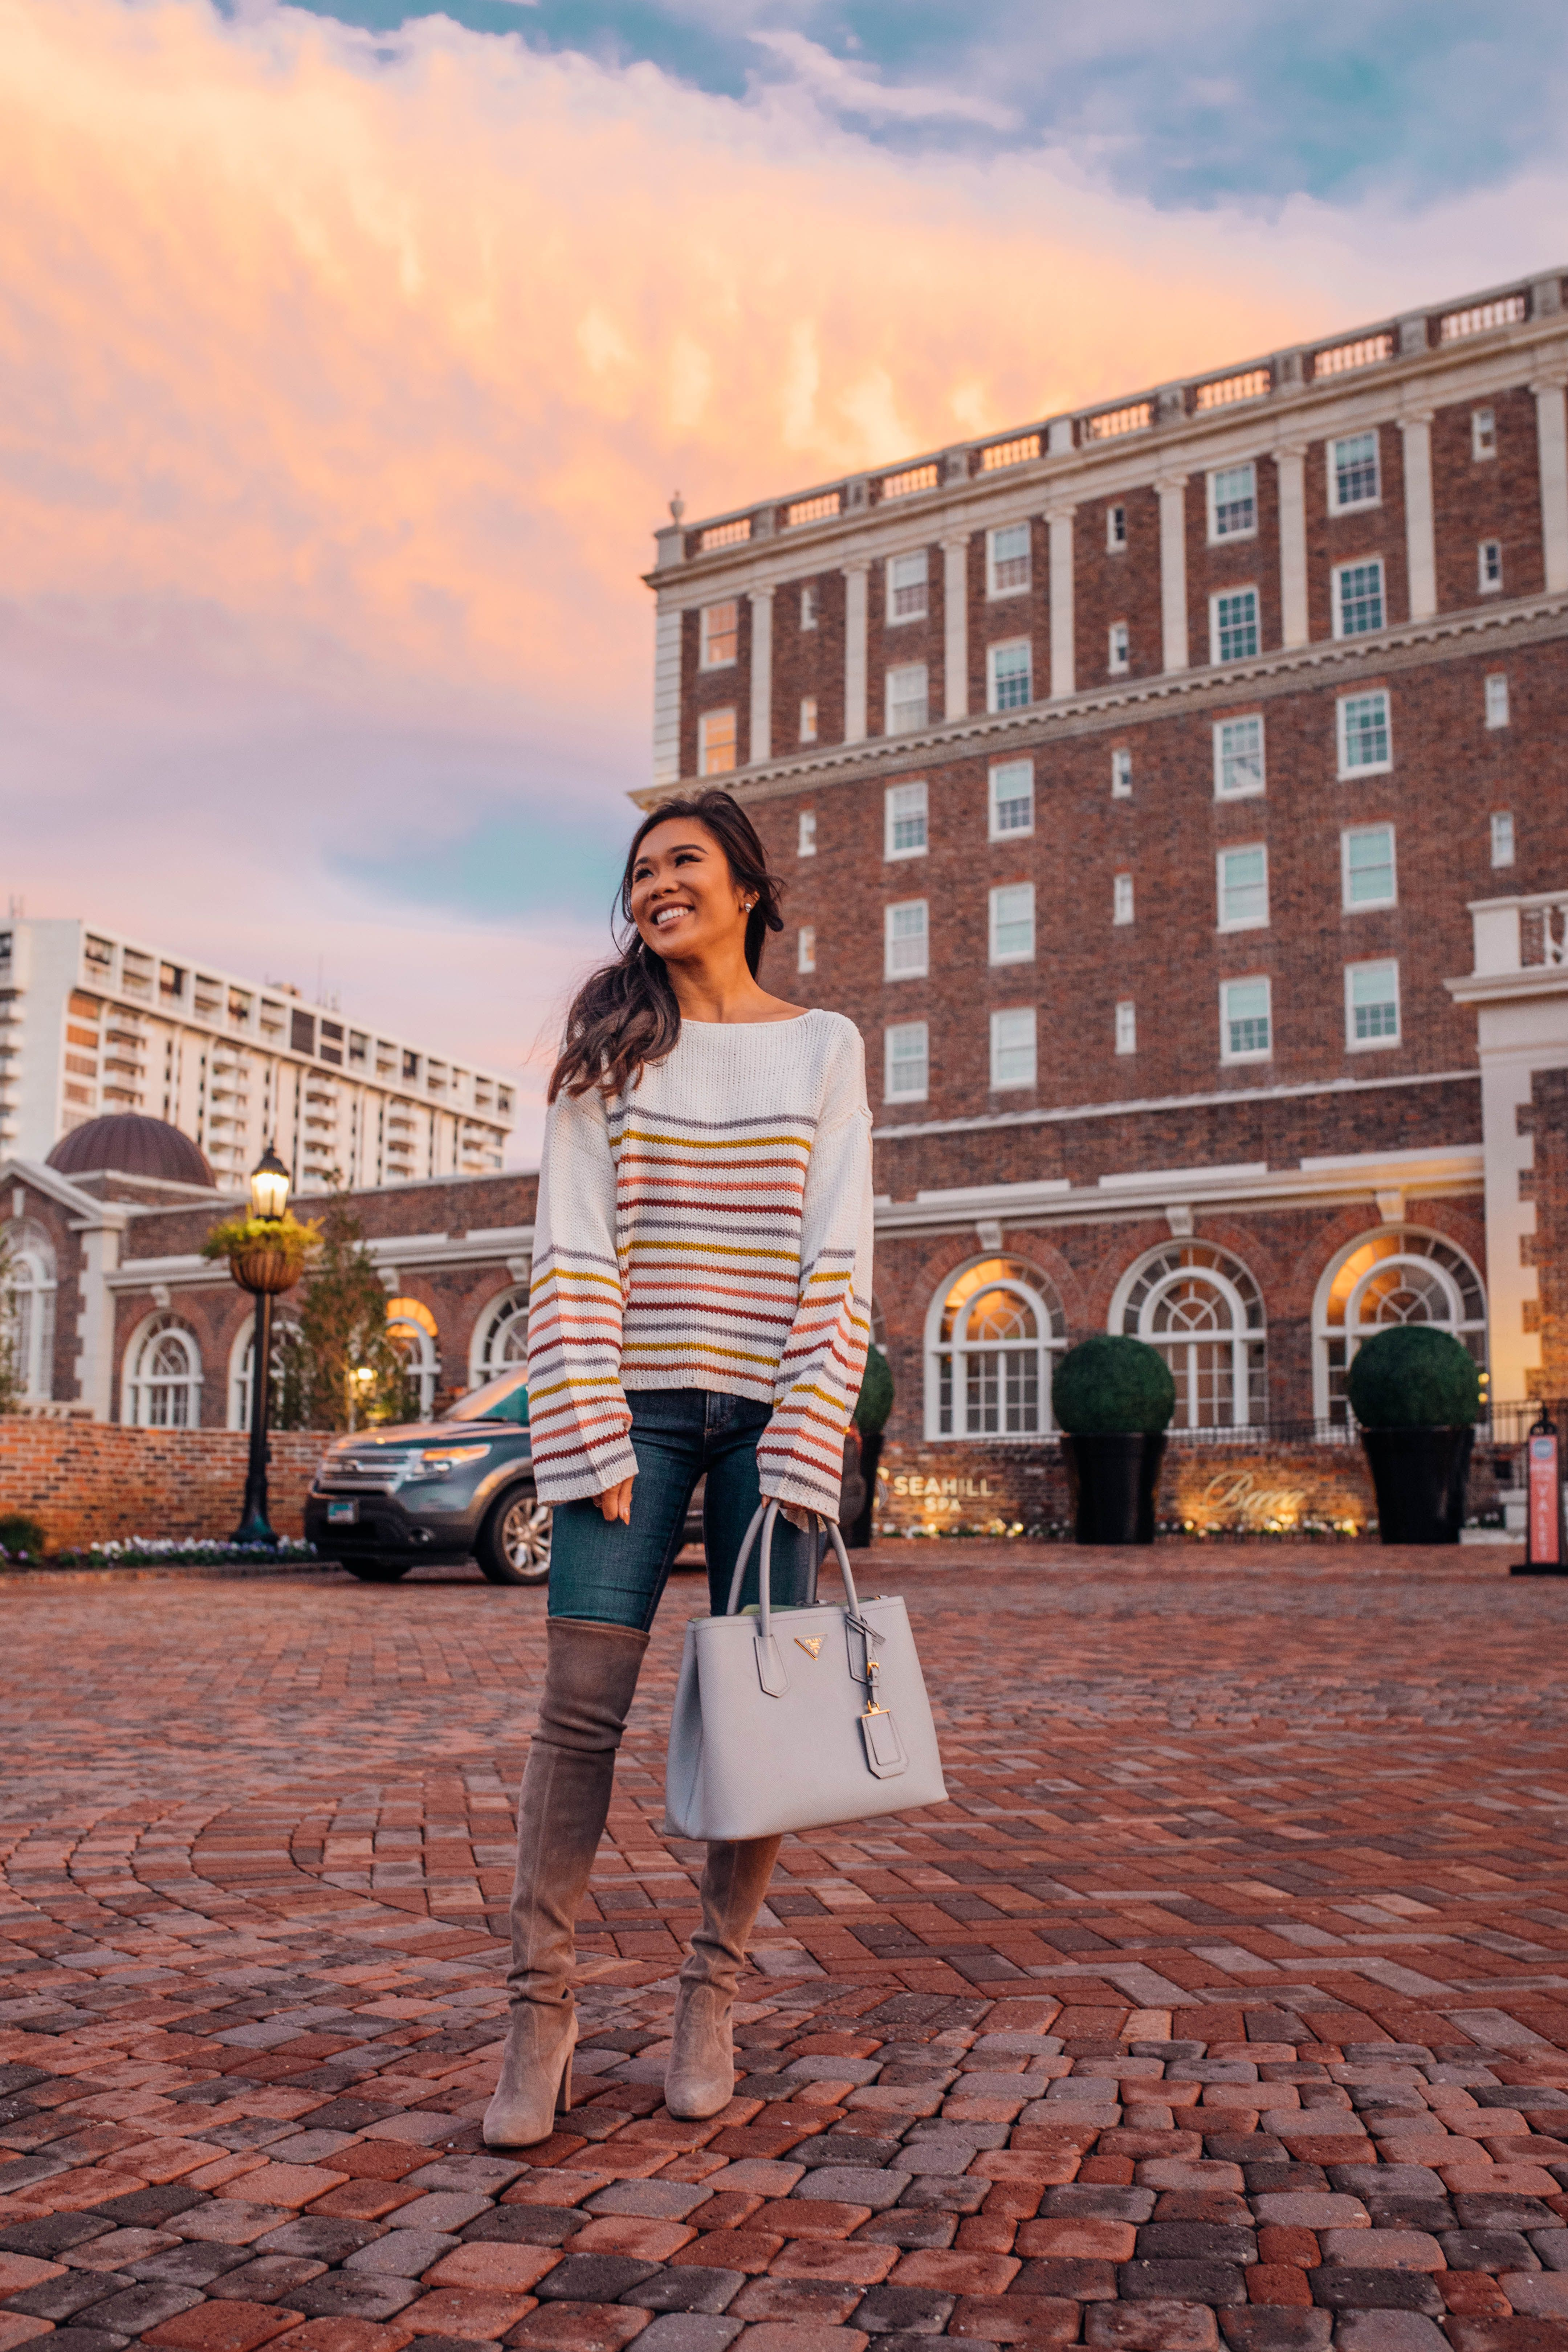 Blogger Hoang-Kim Visits The Historic Cavalier Hotel In